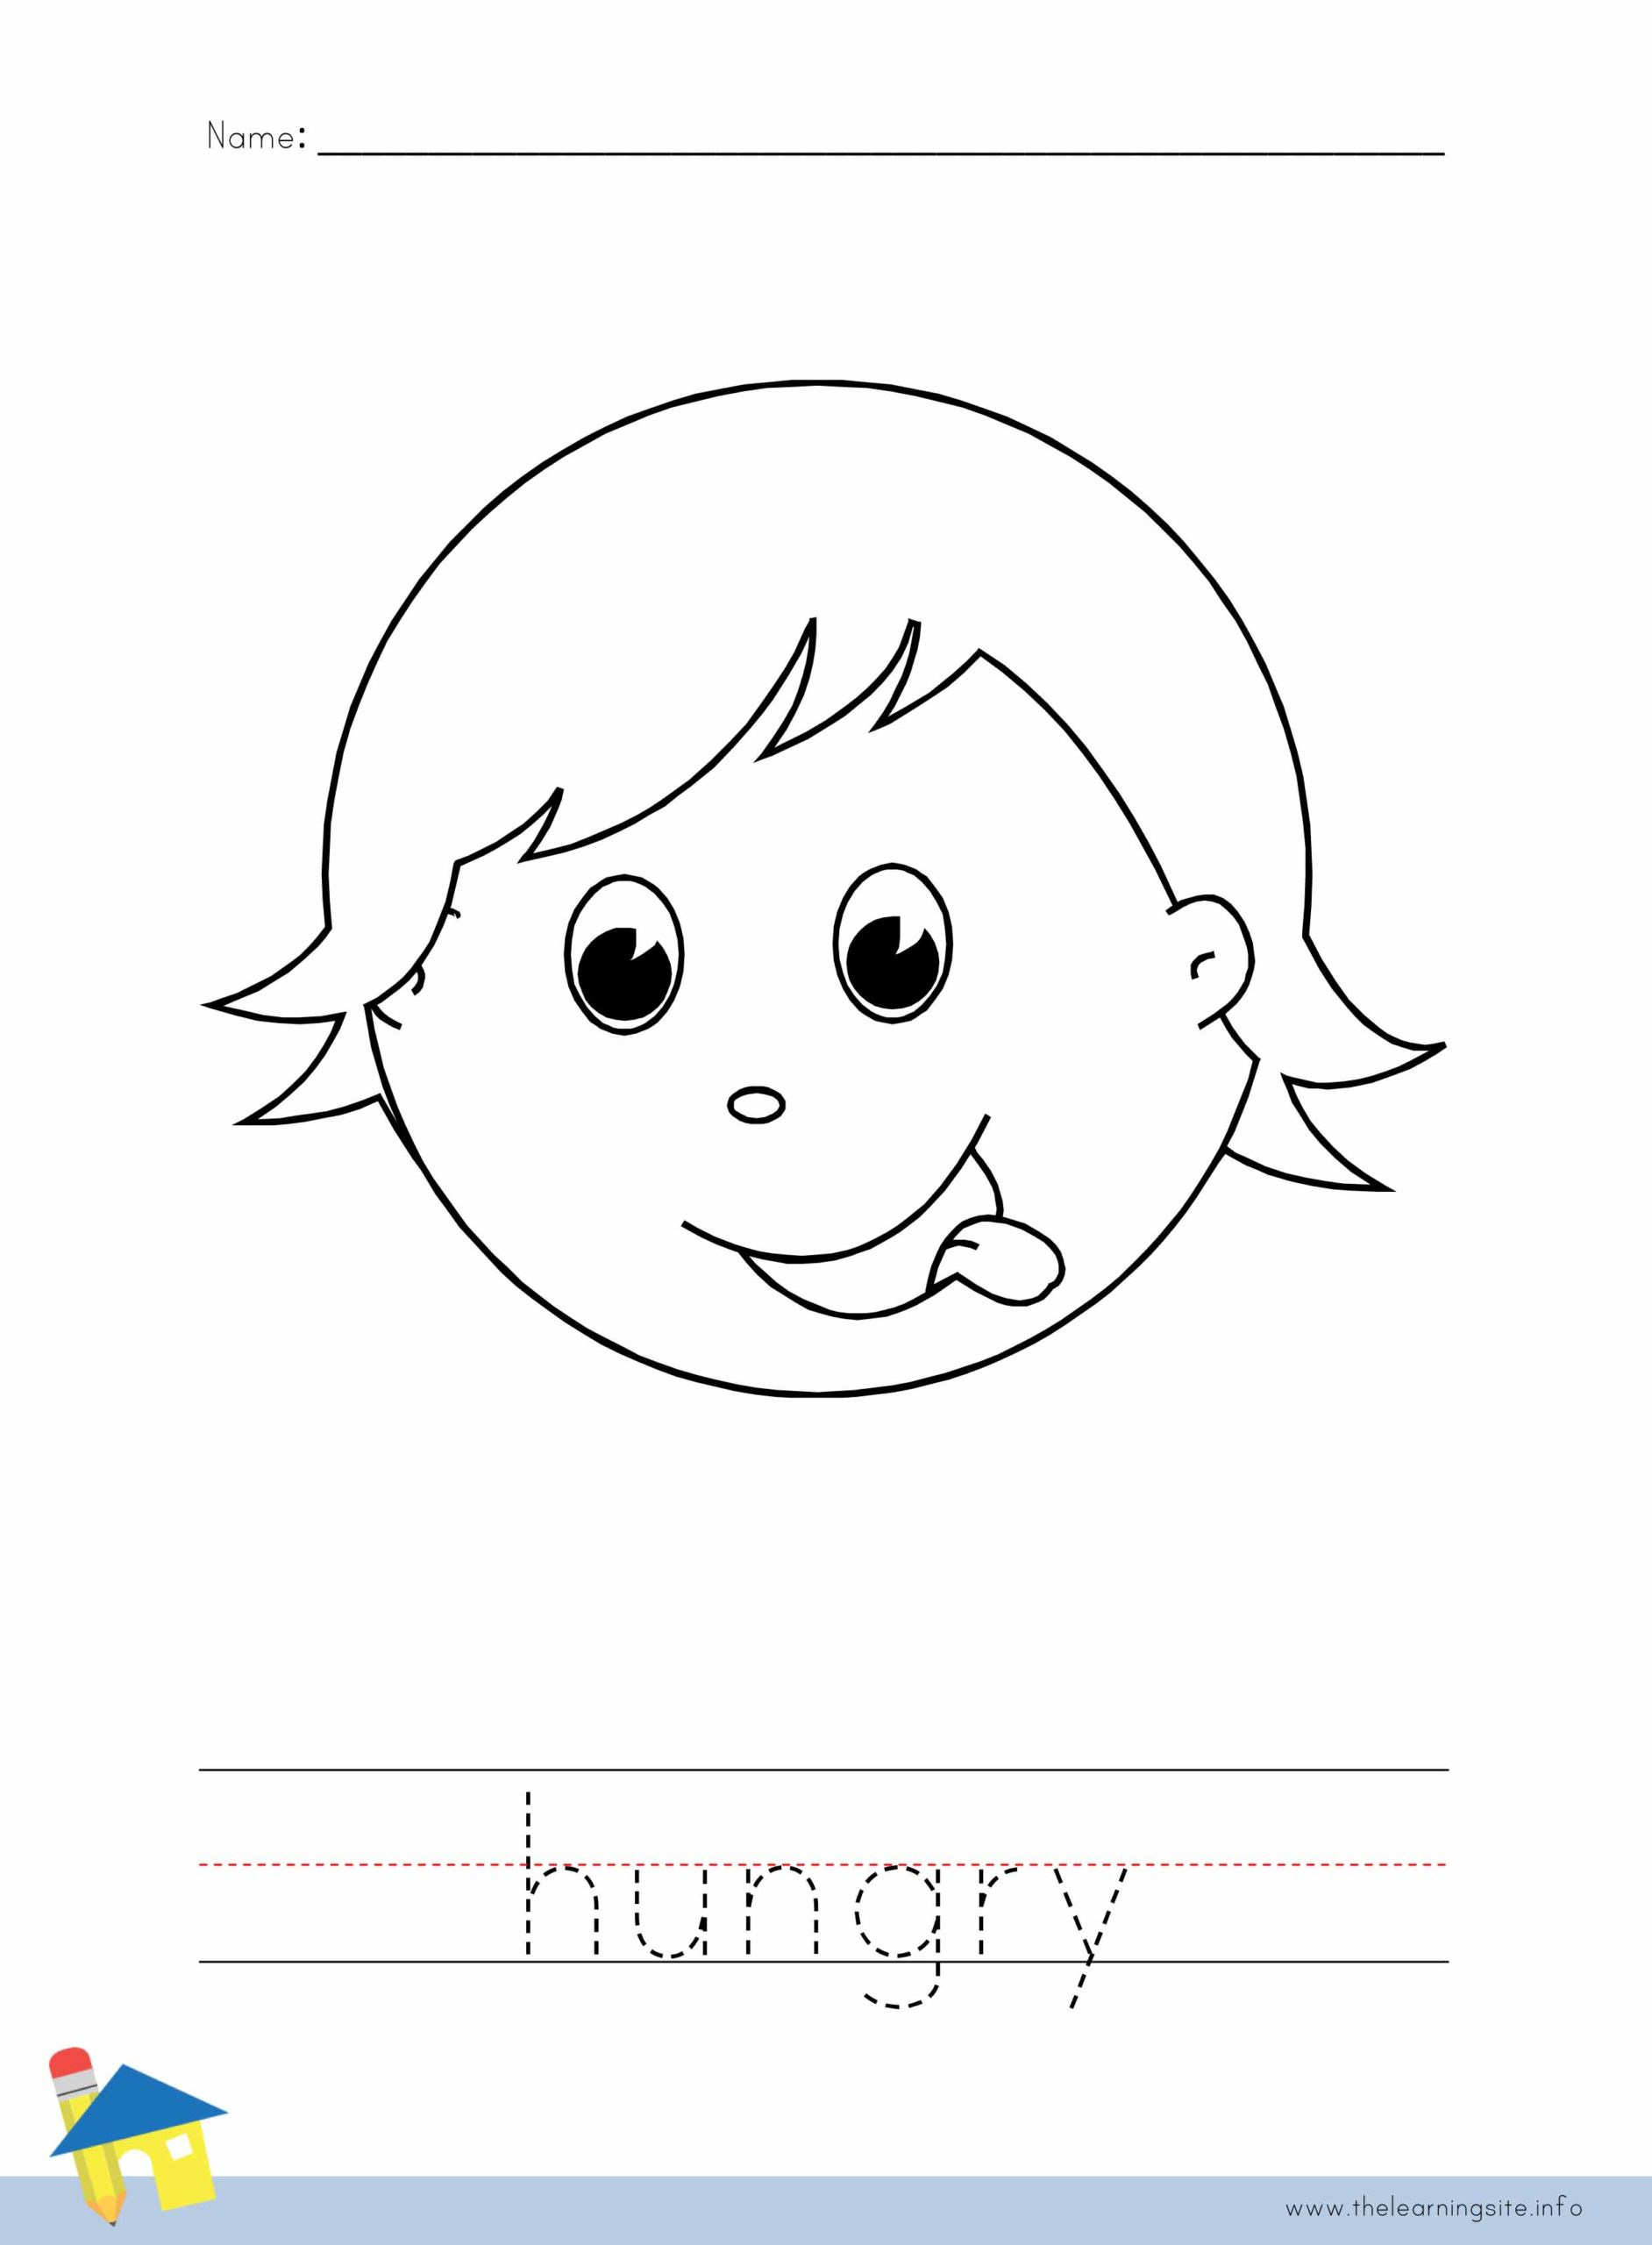 Hungry Coloring Worksheet The Learning Site